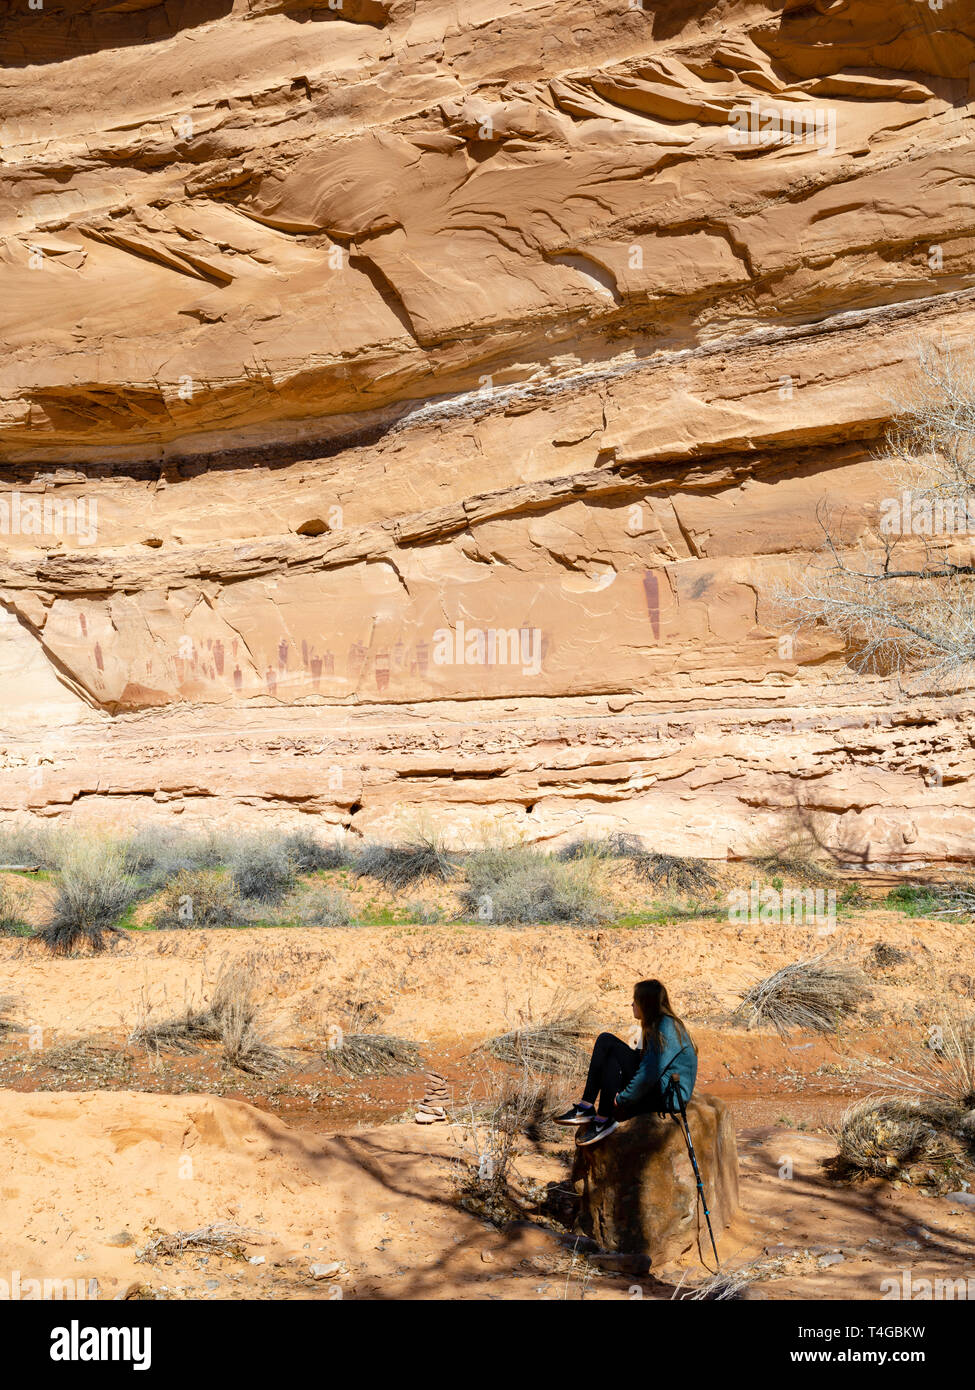 Image of ancient pictographs created by Native Americans; Horseshoe Canyon, Canyonlands National Park, Emery County, Utah, USA. - Stock Image